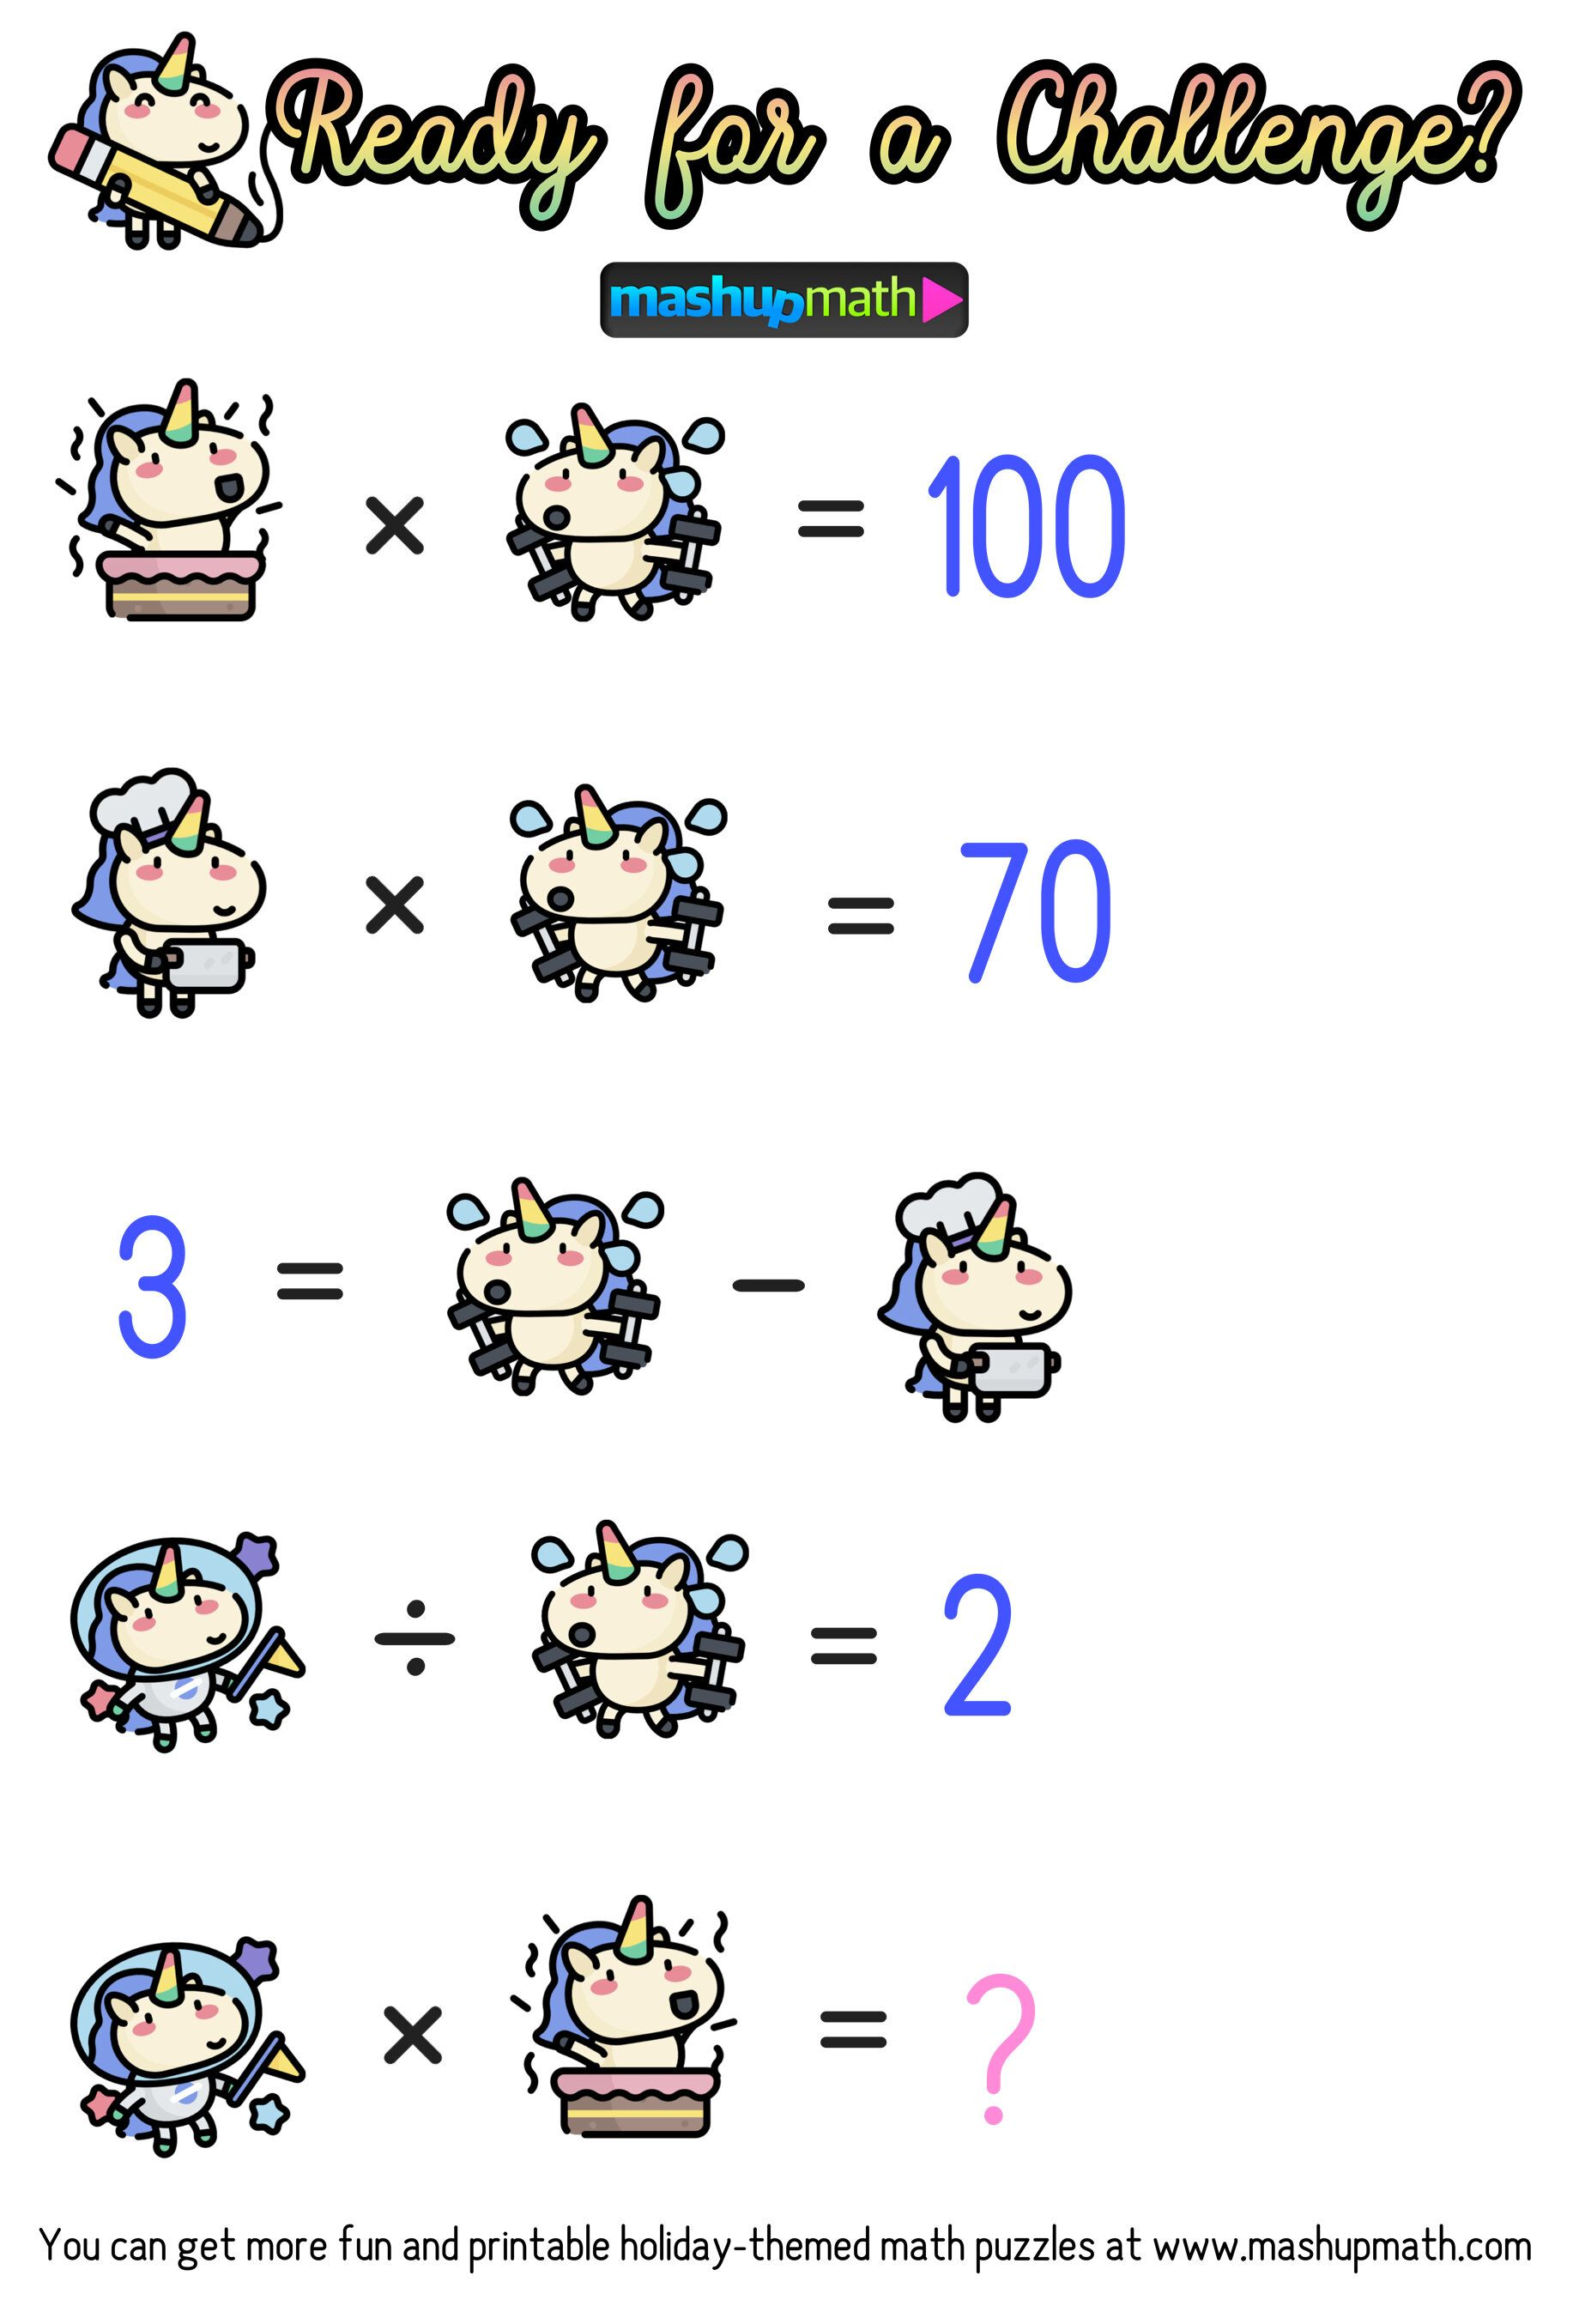 Math Cartoons Unicorn Math Puzzles For Grades 1 6 In